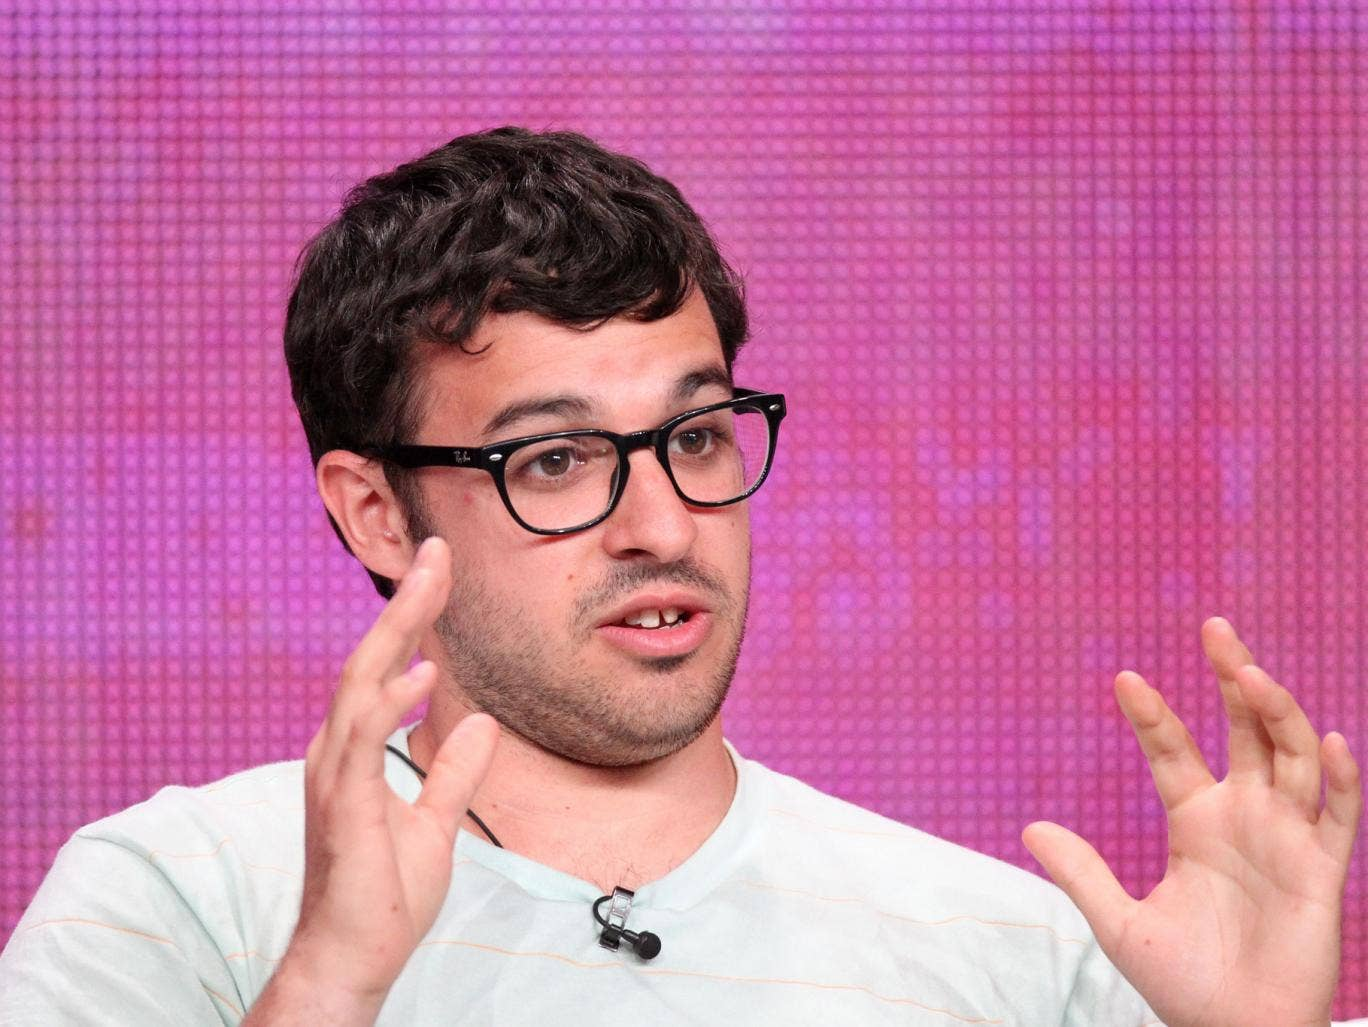 Simon Bird, who plays Will in The Inbetweeners, admits to being the most troublesome actor on set